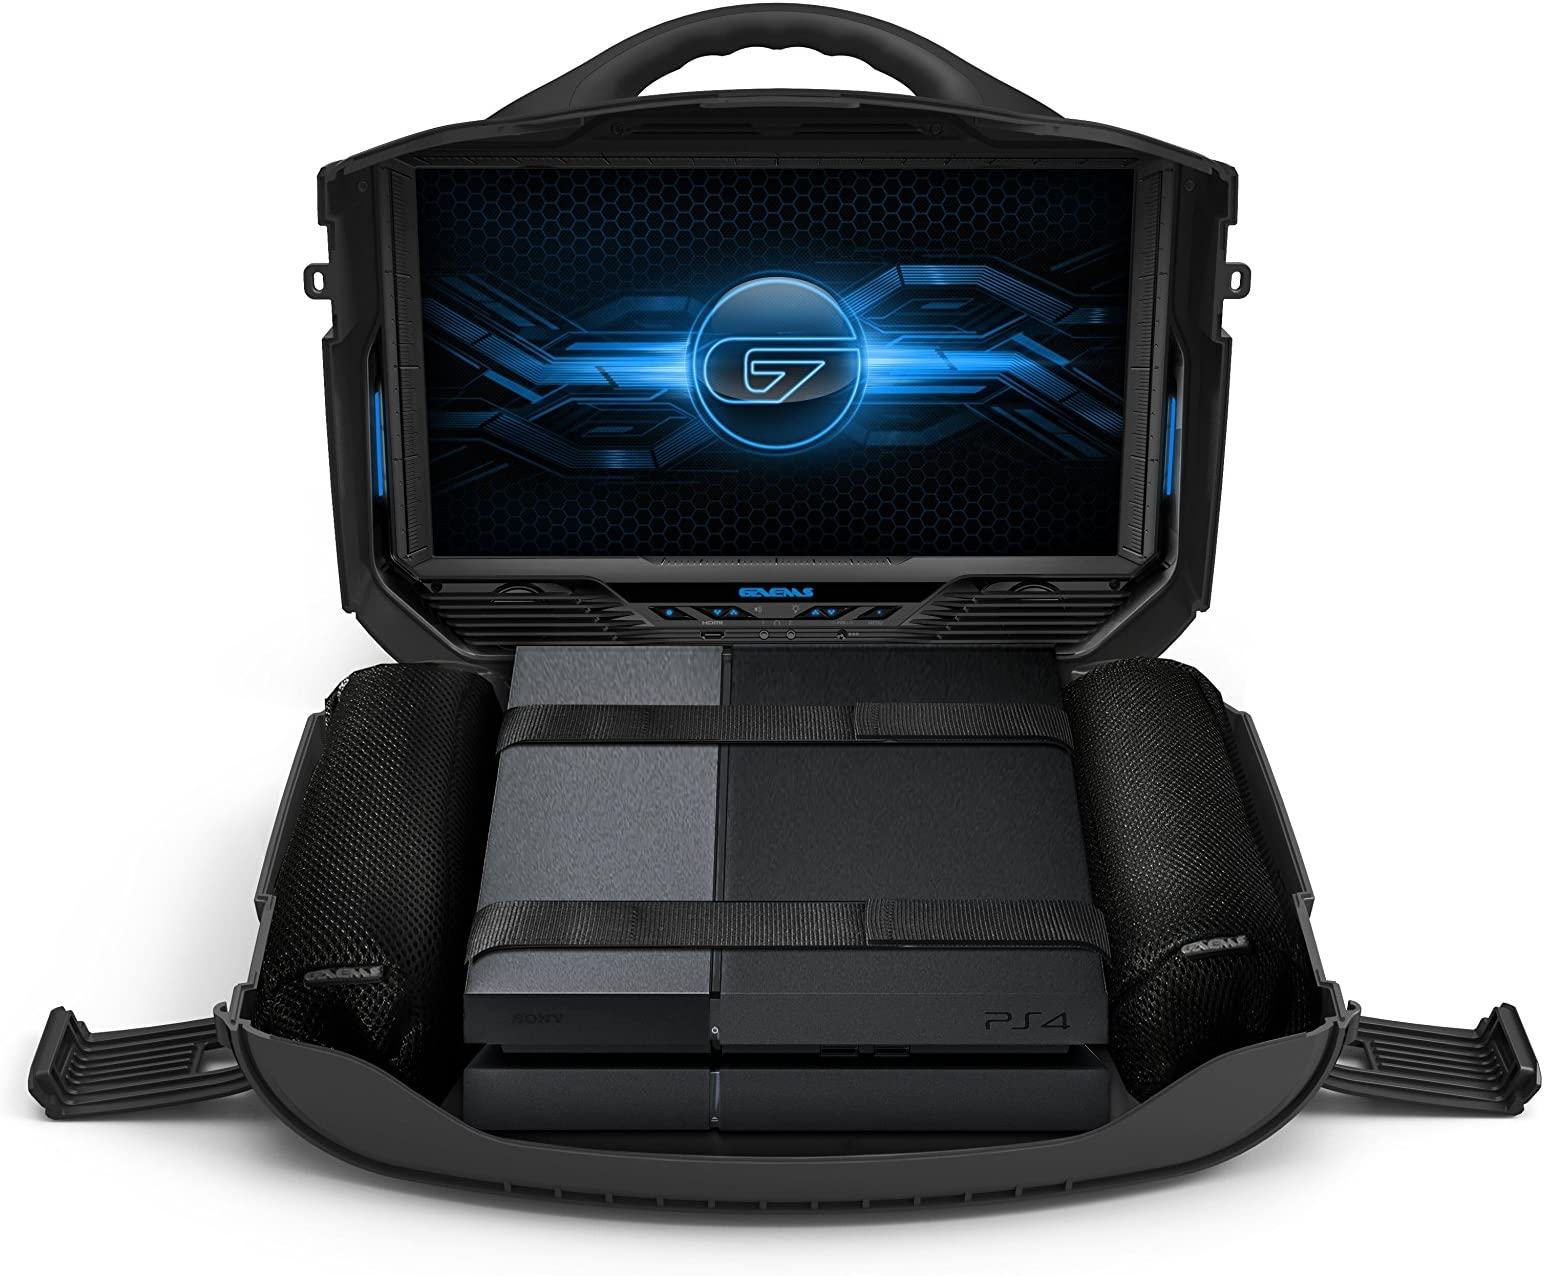 A portable console suitcase with a monitor that let[s you play with your Xbox or PS4 wherever you go.